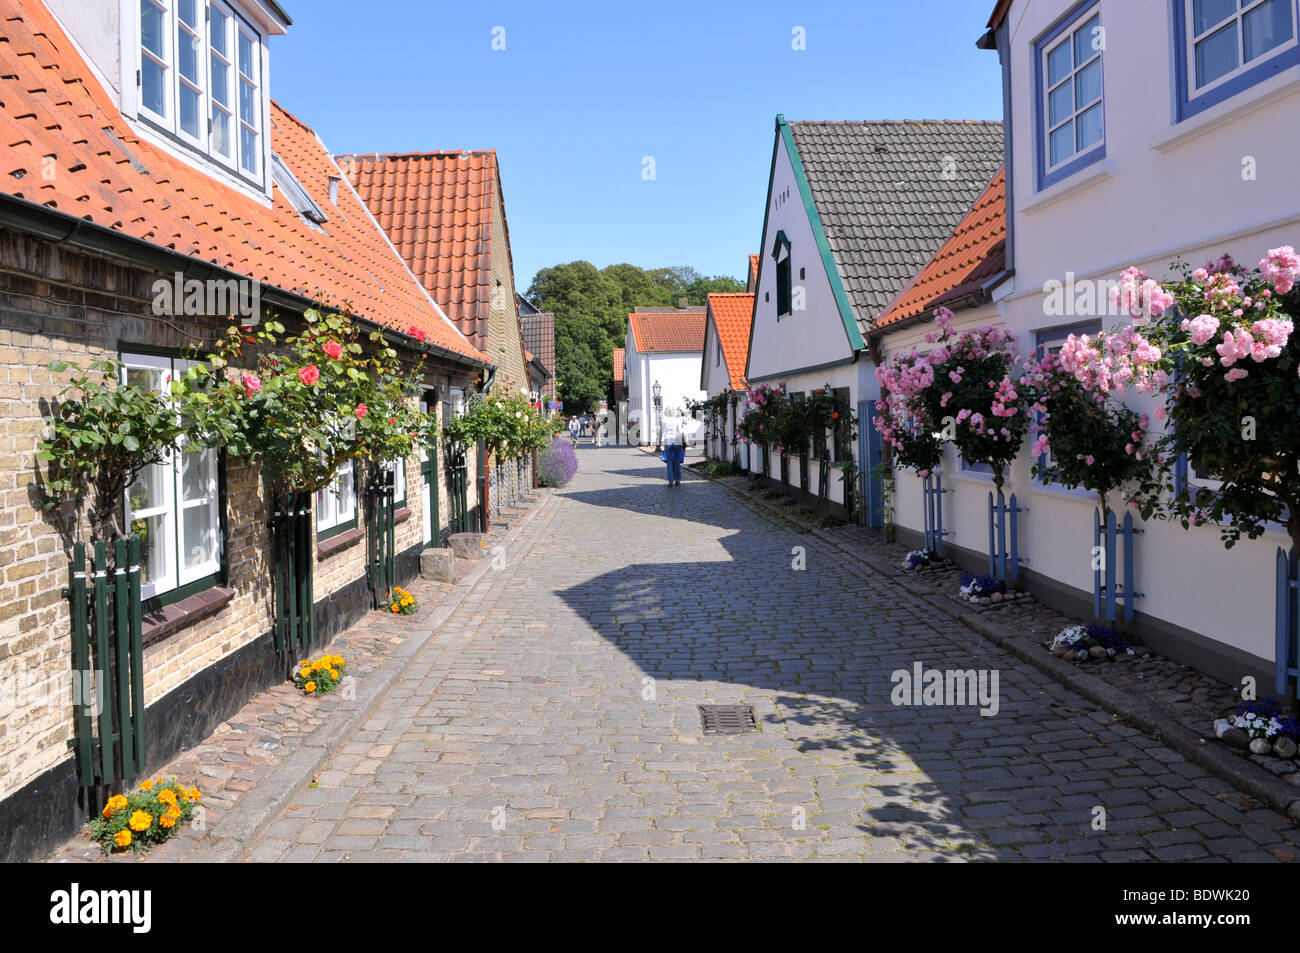 old houses in the fishing village of holm schleswig stock photo royalty free image 25764648. Black Bedroom Furniture Sets. Home Design Ideas